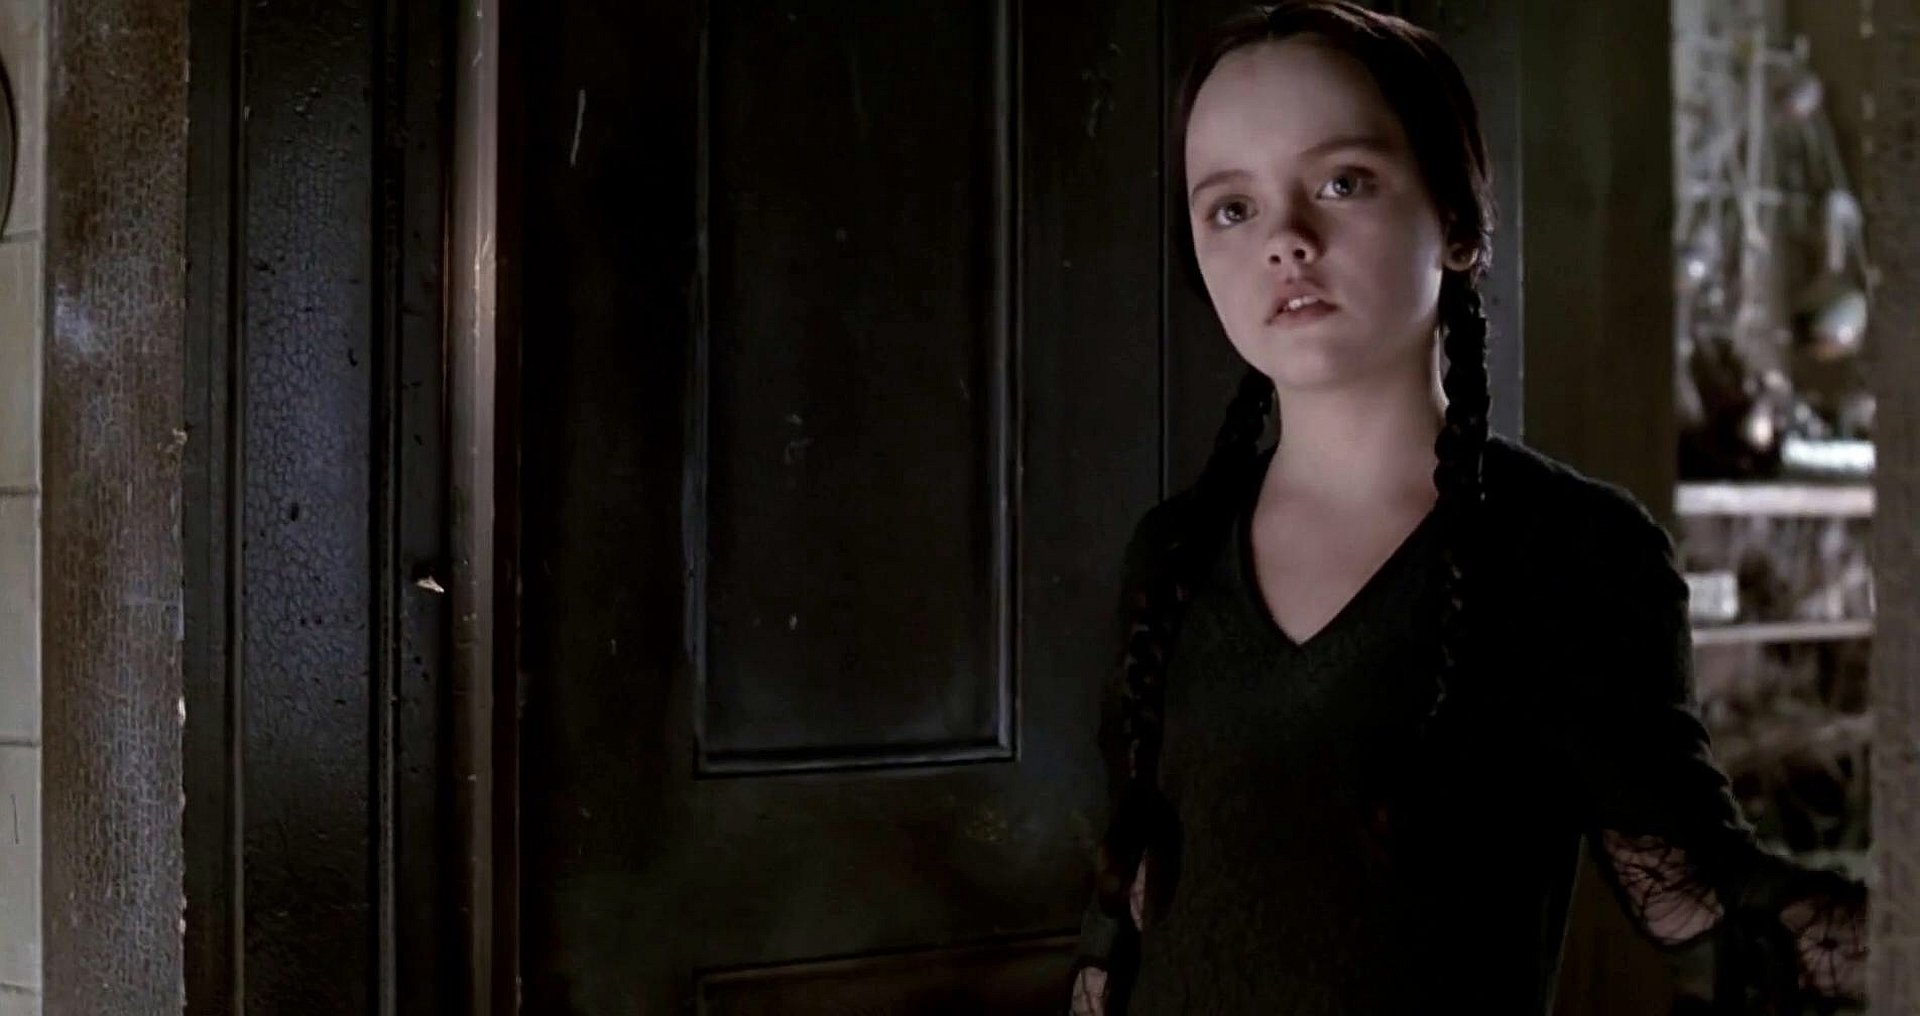 Wednesday Addams portrayed by Christina Ricci in Barry Sonnenfeld's 1991 Addams Family featured film.